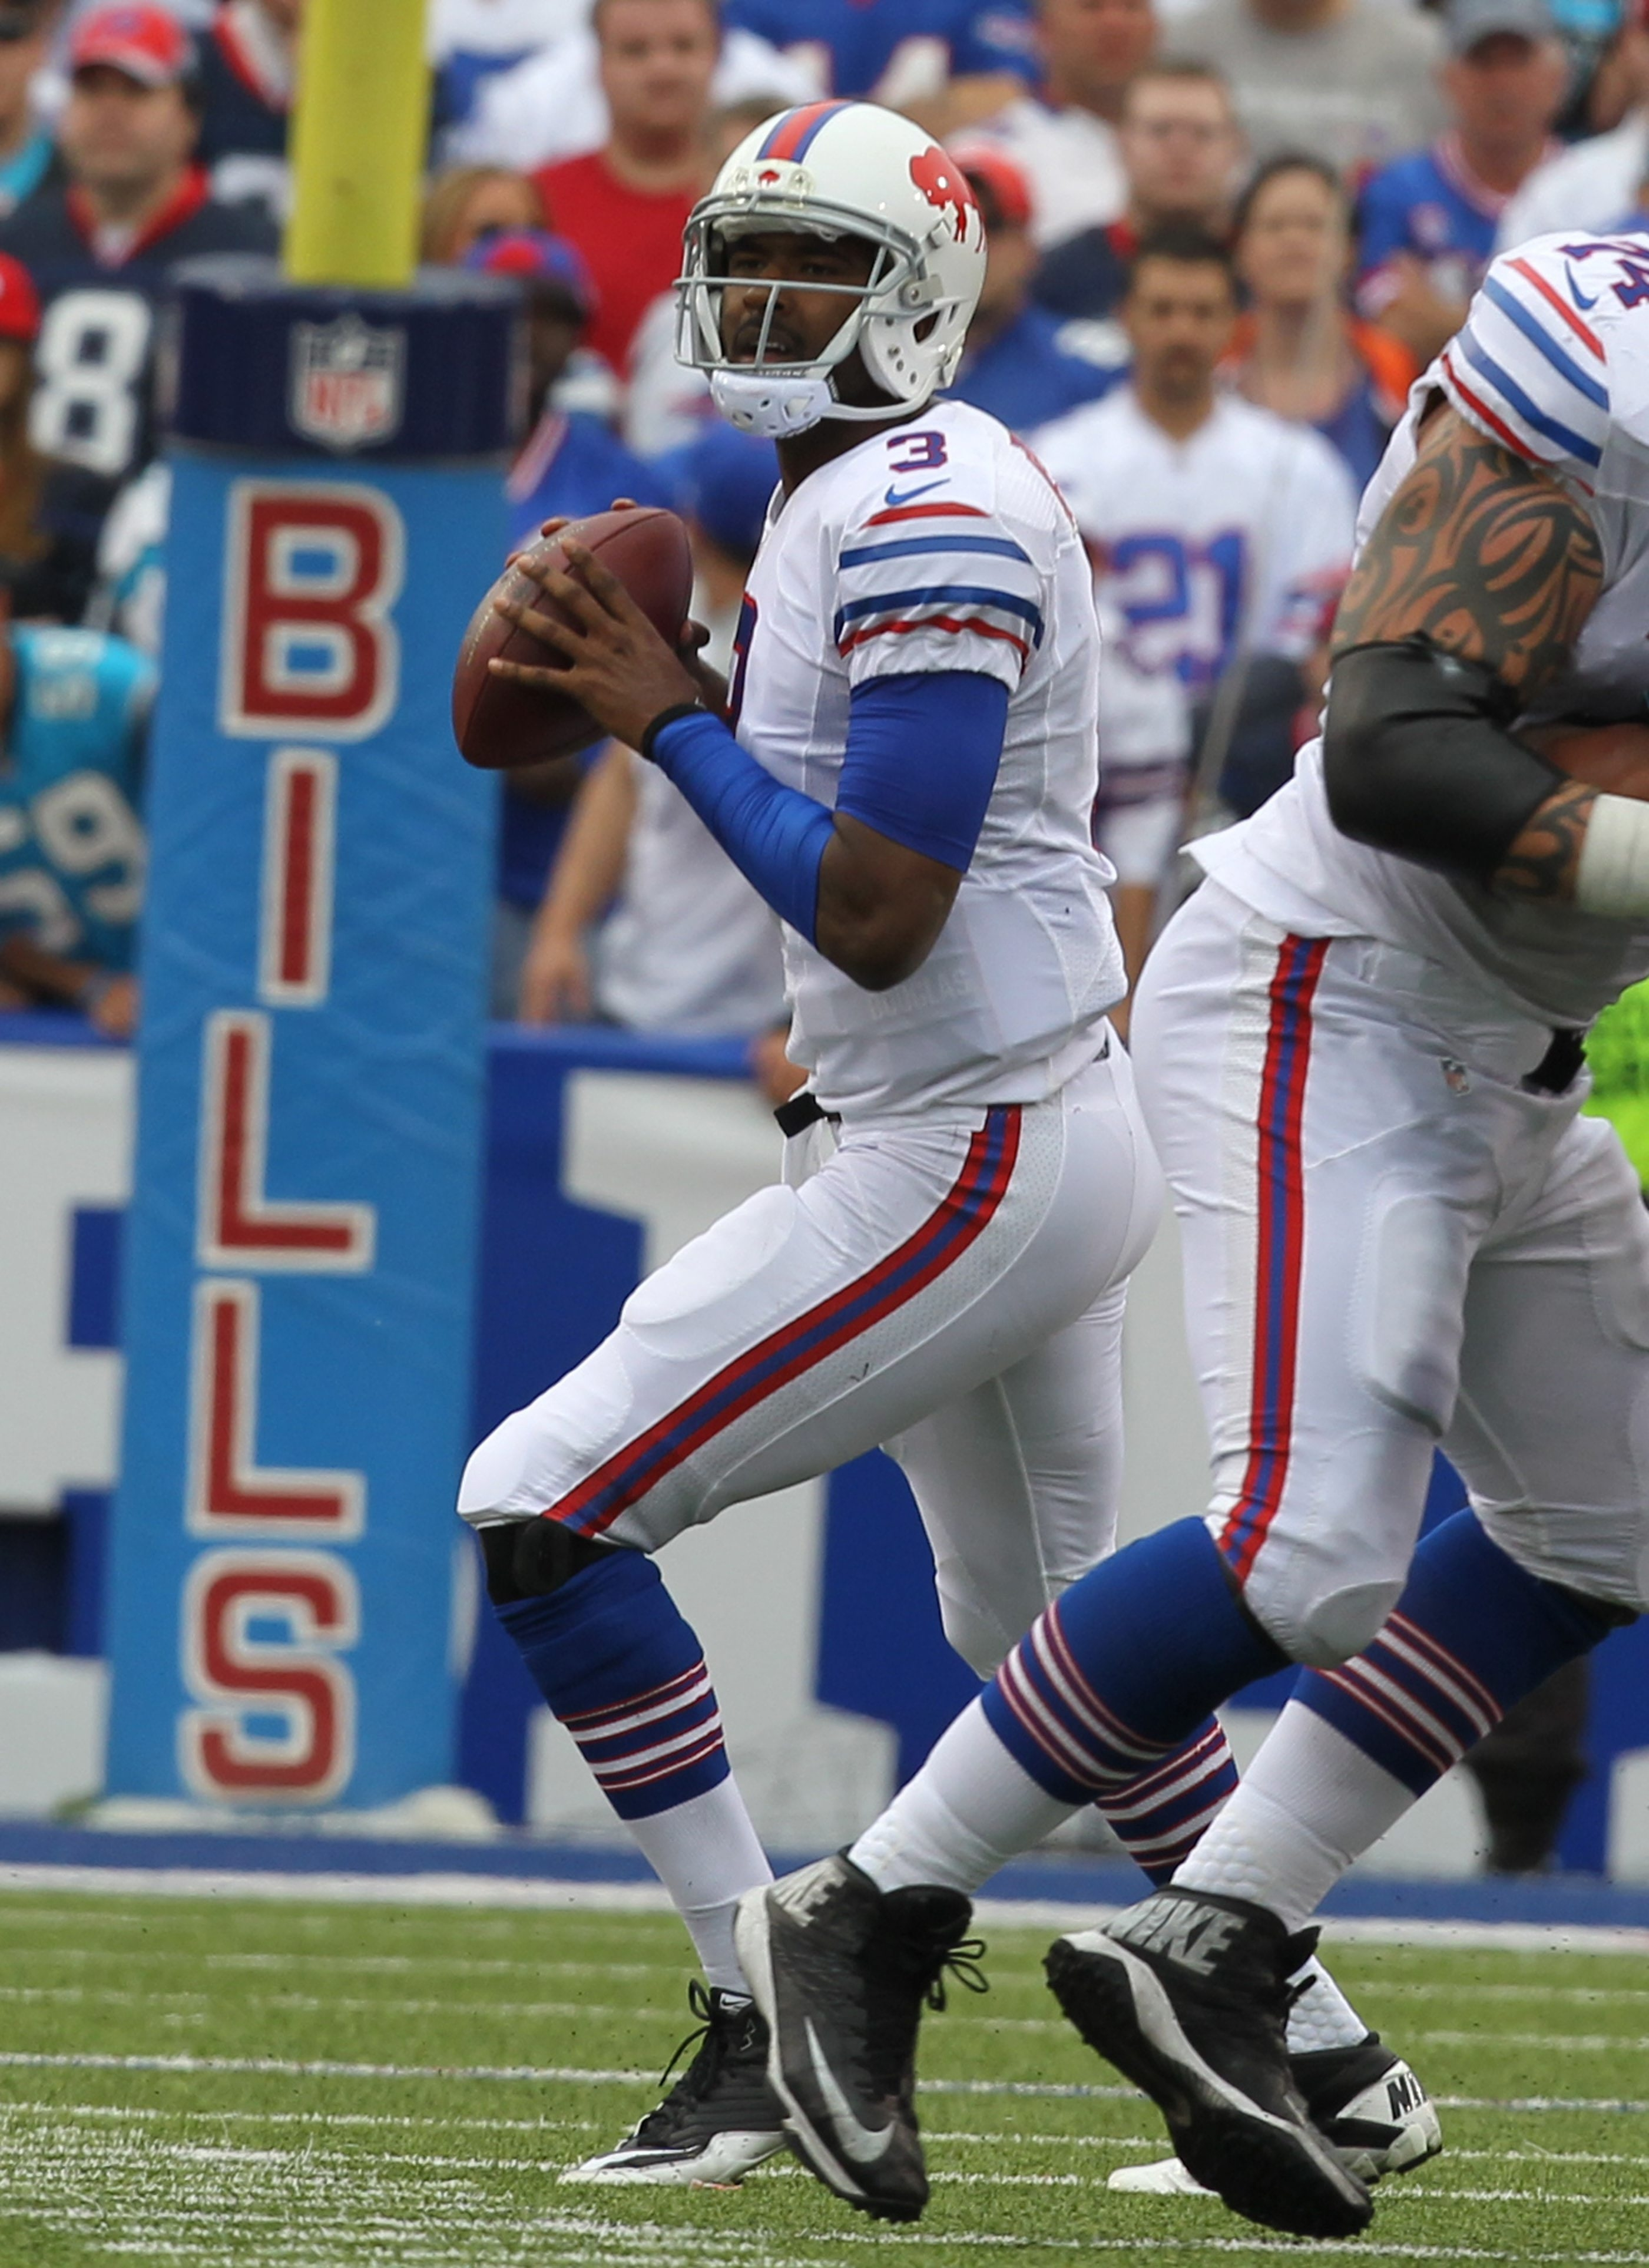 EJ Manuel's ability to throw downfield will be tested against the Jets.